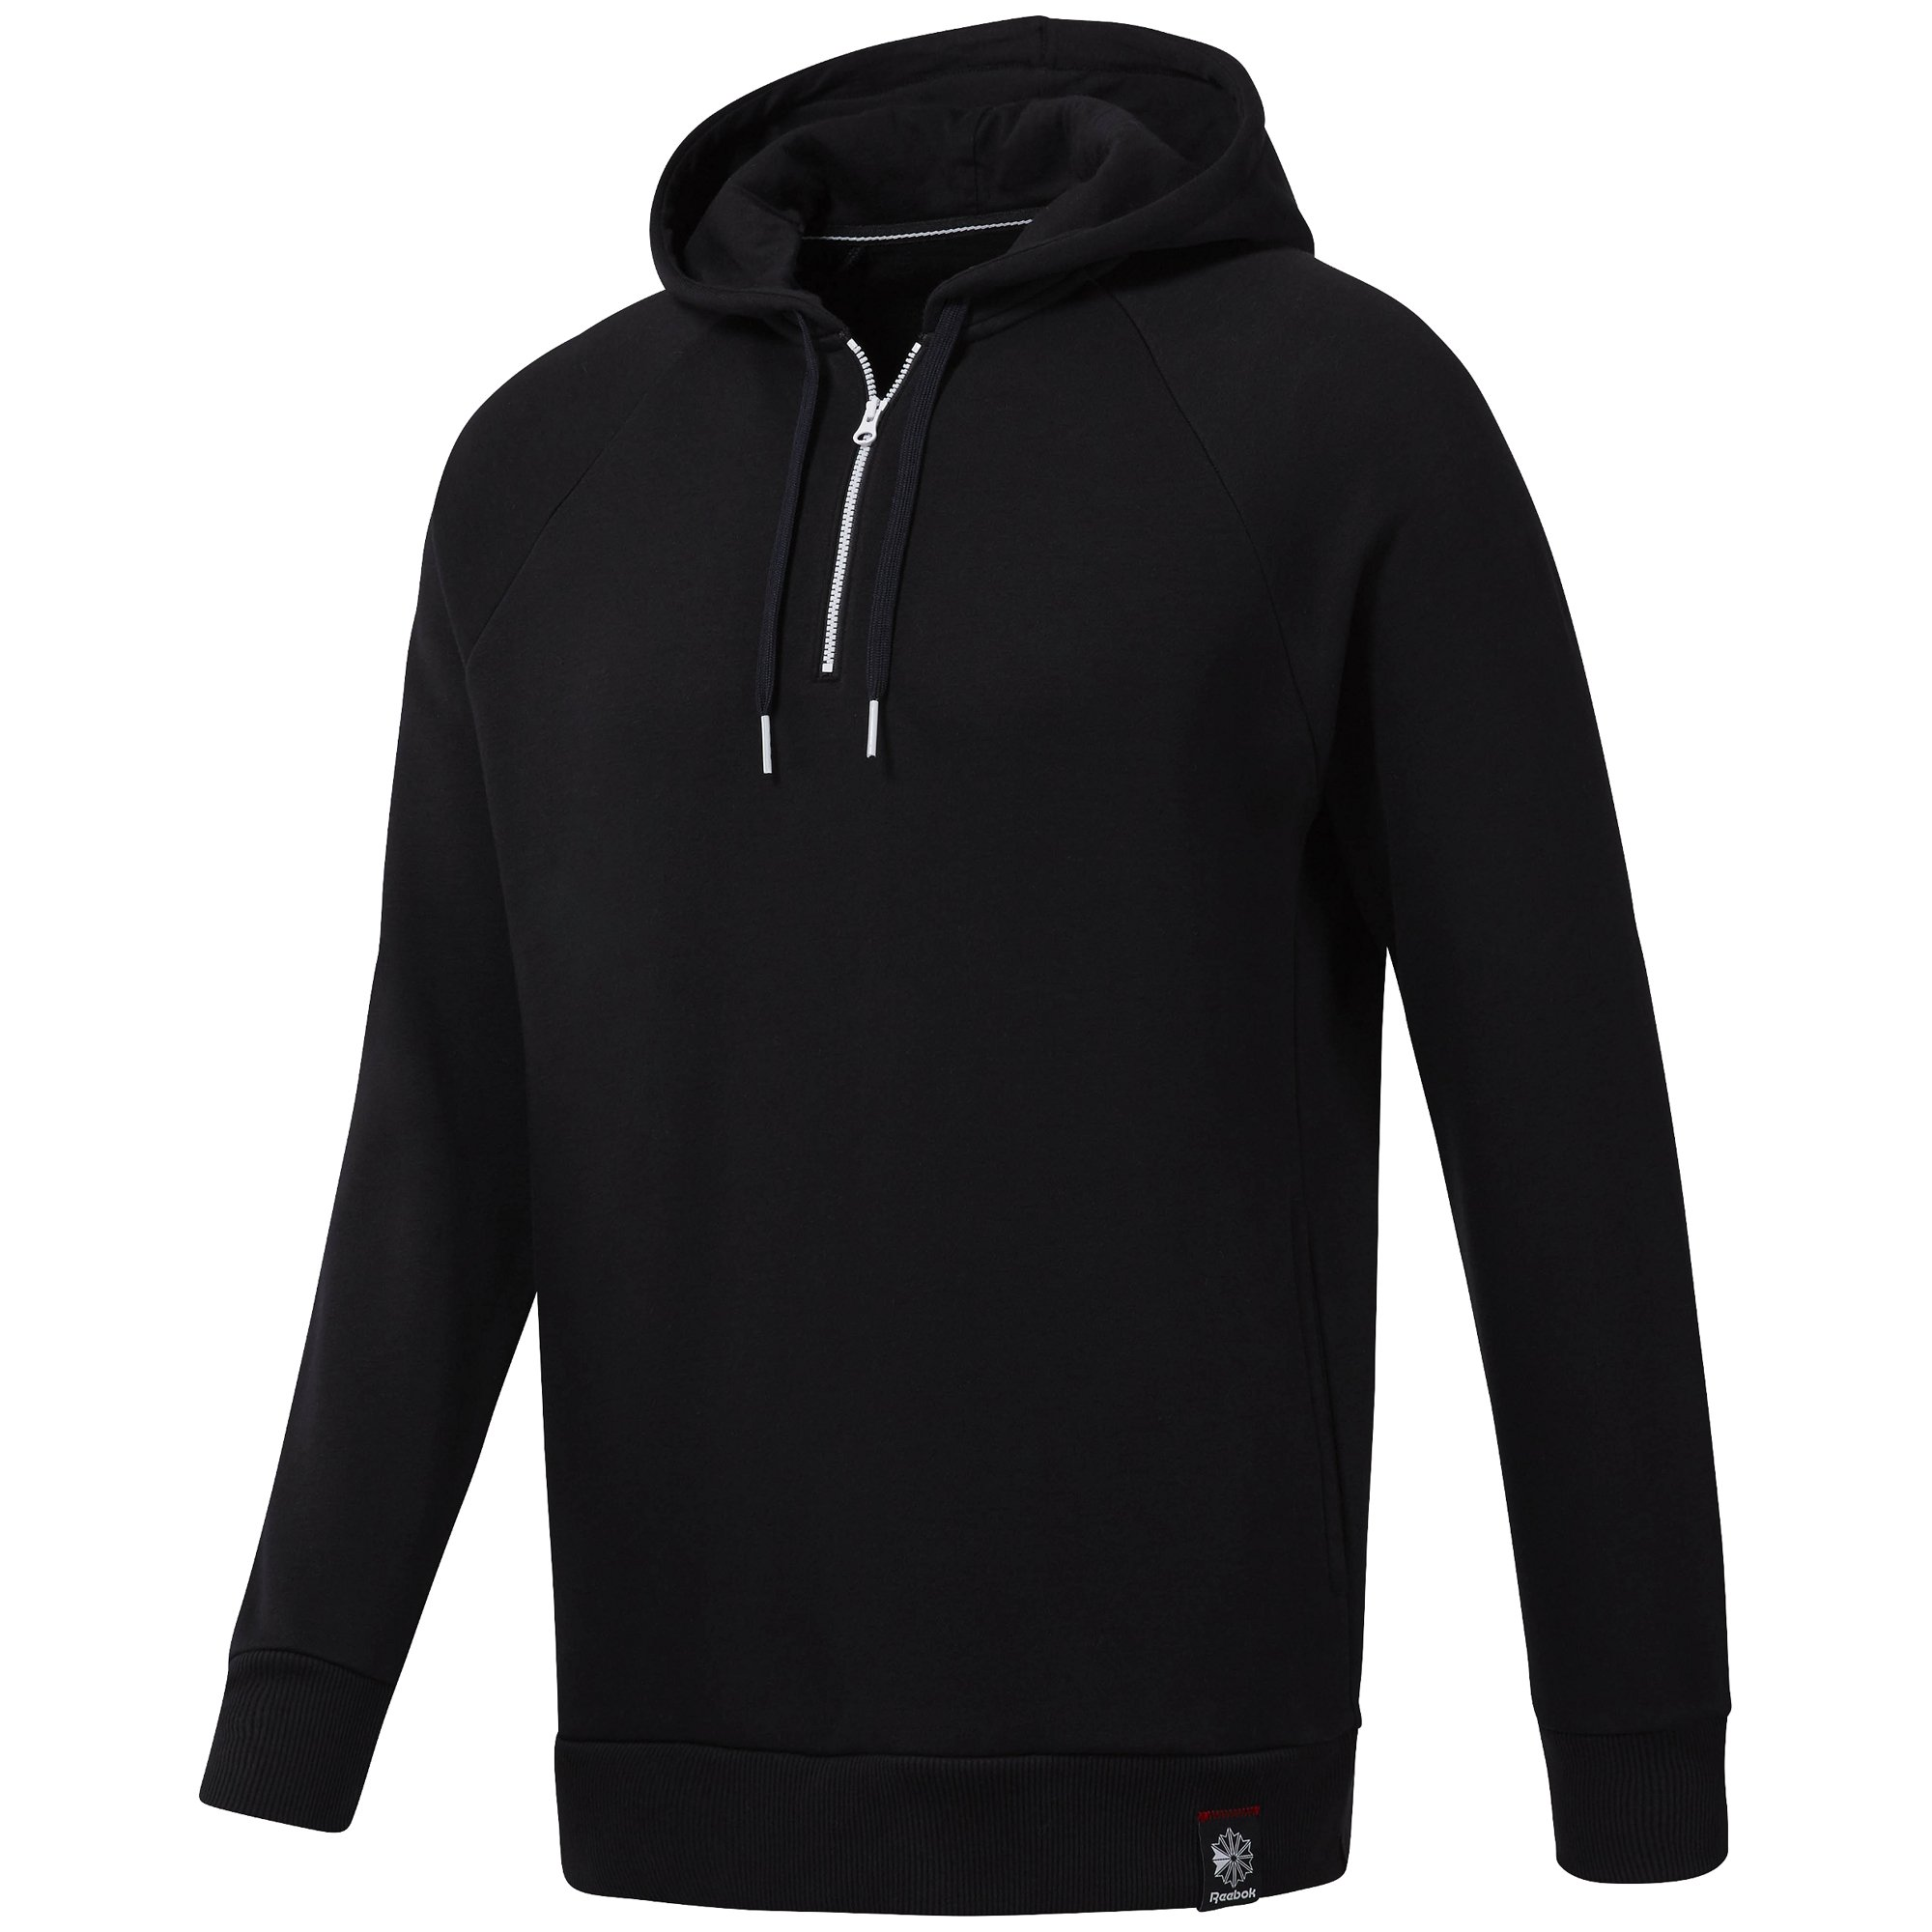 Reebok Active Chill 1/2 Zip, Black, Small